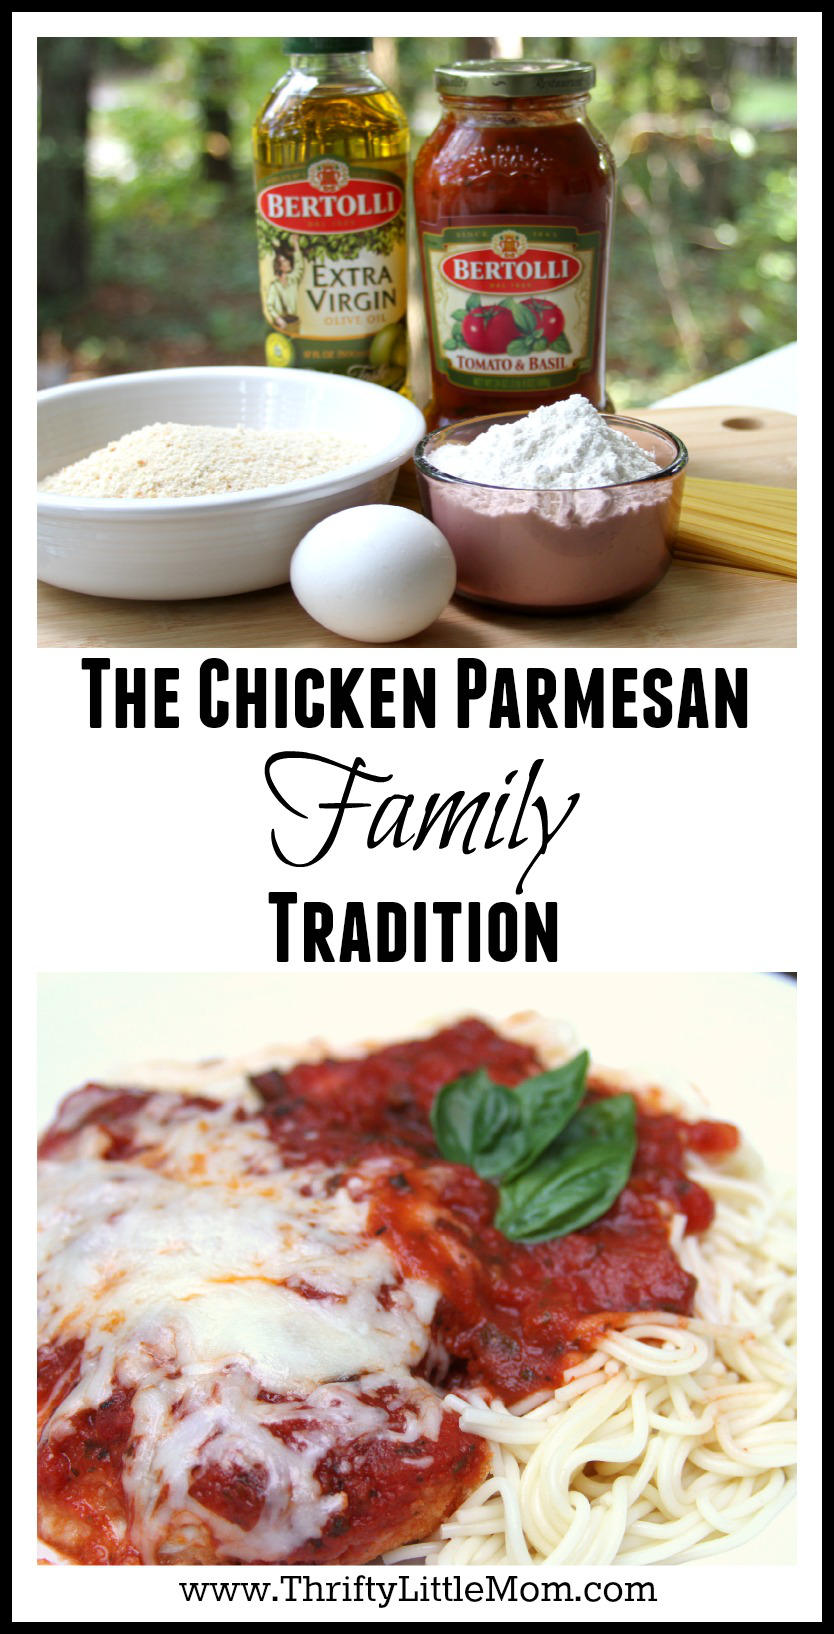 Chicken Parmesan Family Tradition